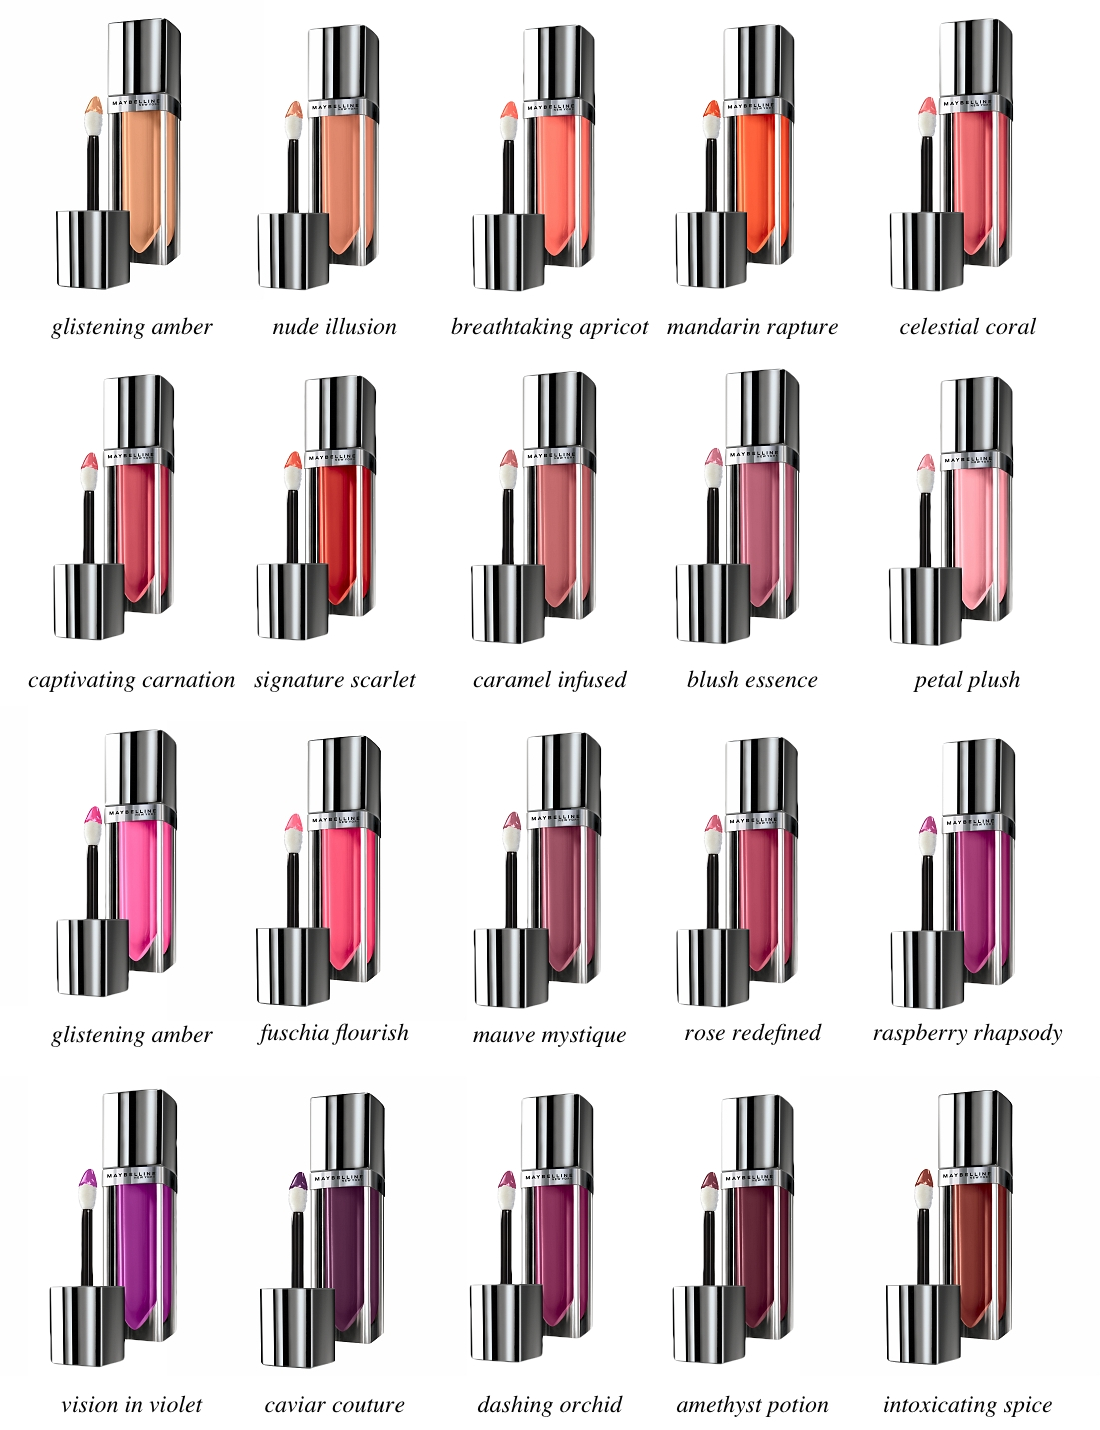 Maybelline Color Elixirs In Blush Essence And Signature